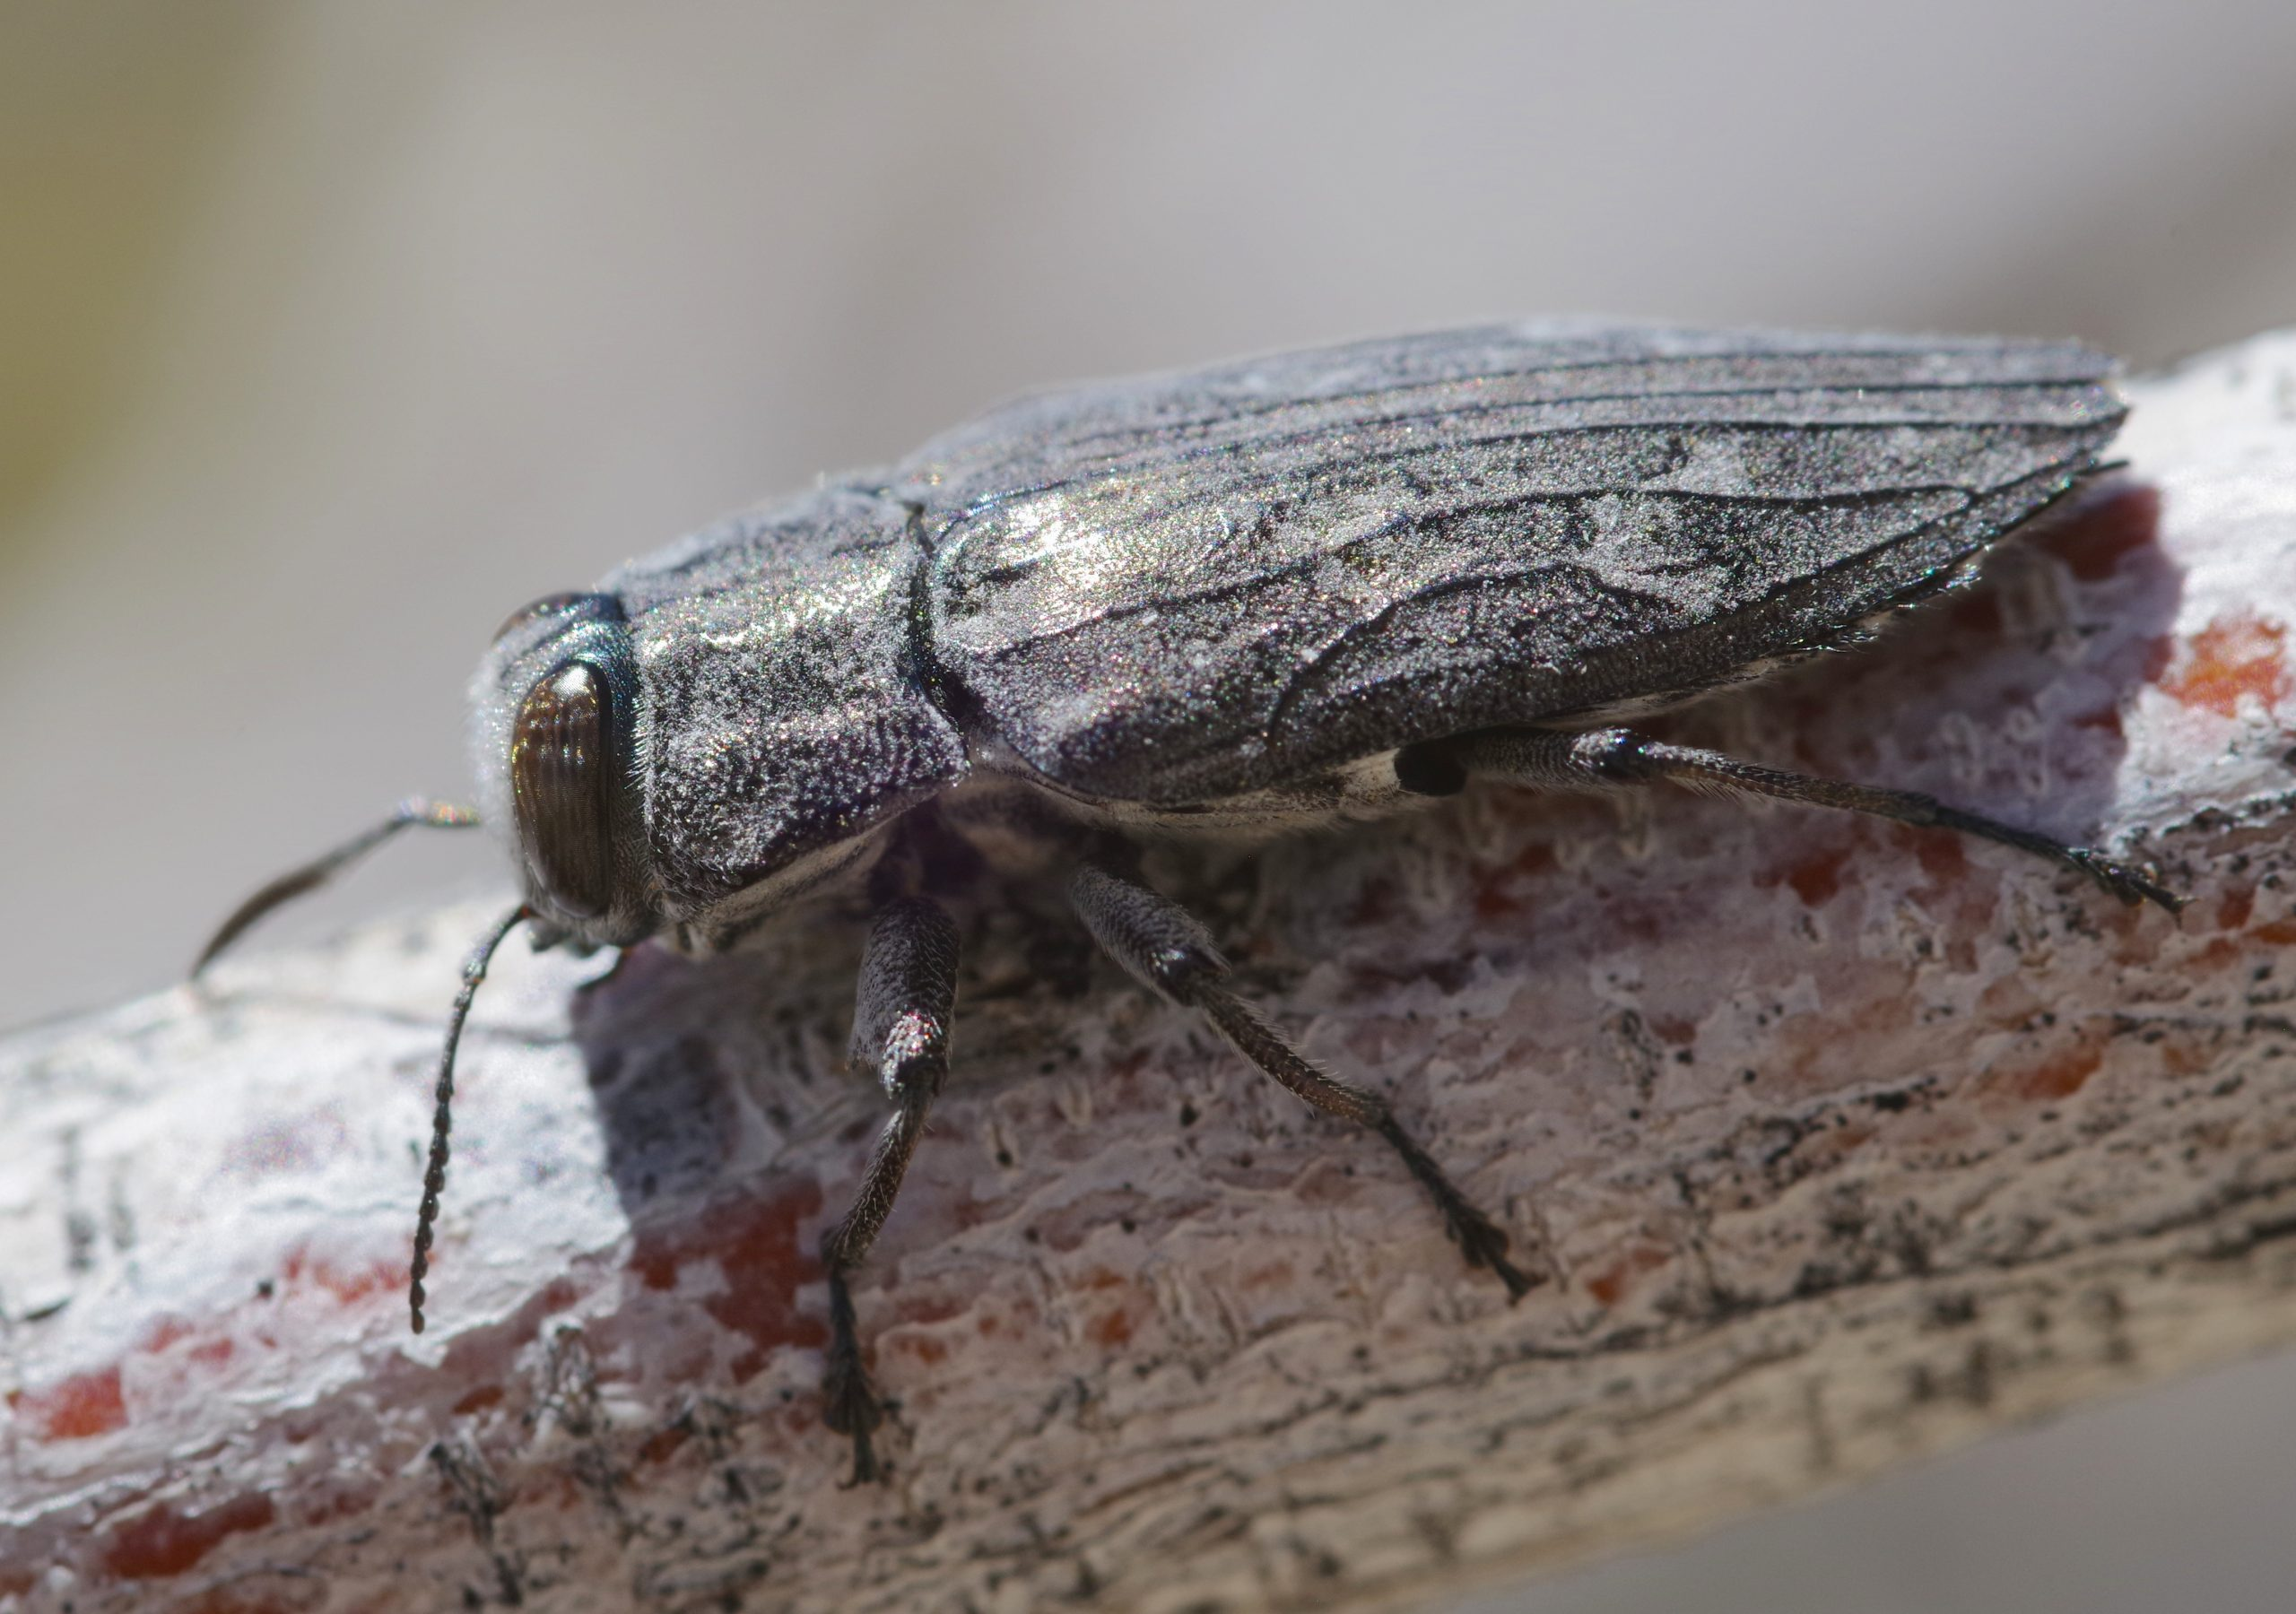 METALLIC WOOD-BORING BEETLE, Chrysobothris femorata group. Photo by Paul De Ley.